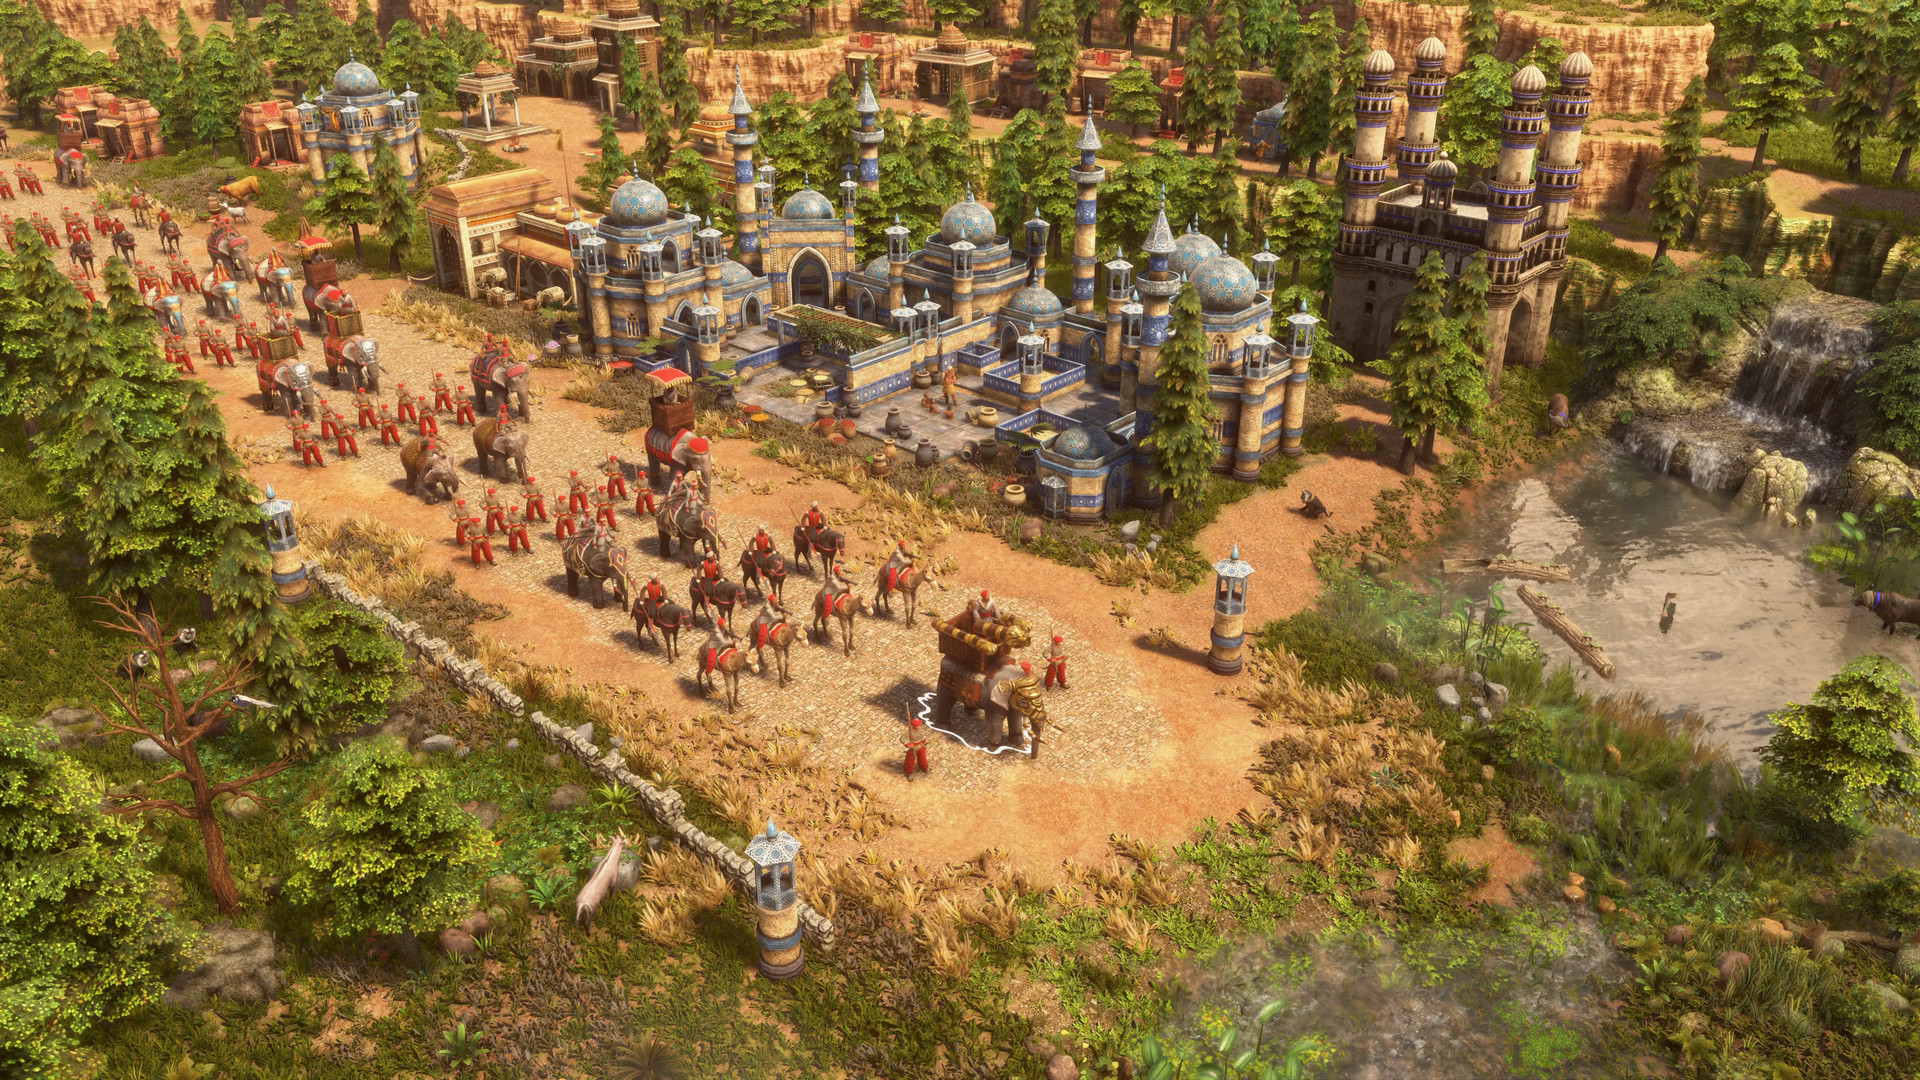 Screenshot for the game Age of Empires III: Definitive Edition (2020) download torrent RePack